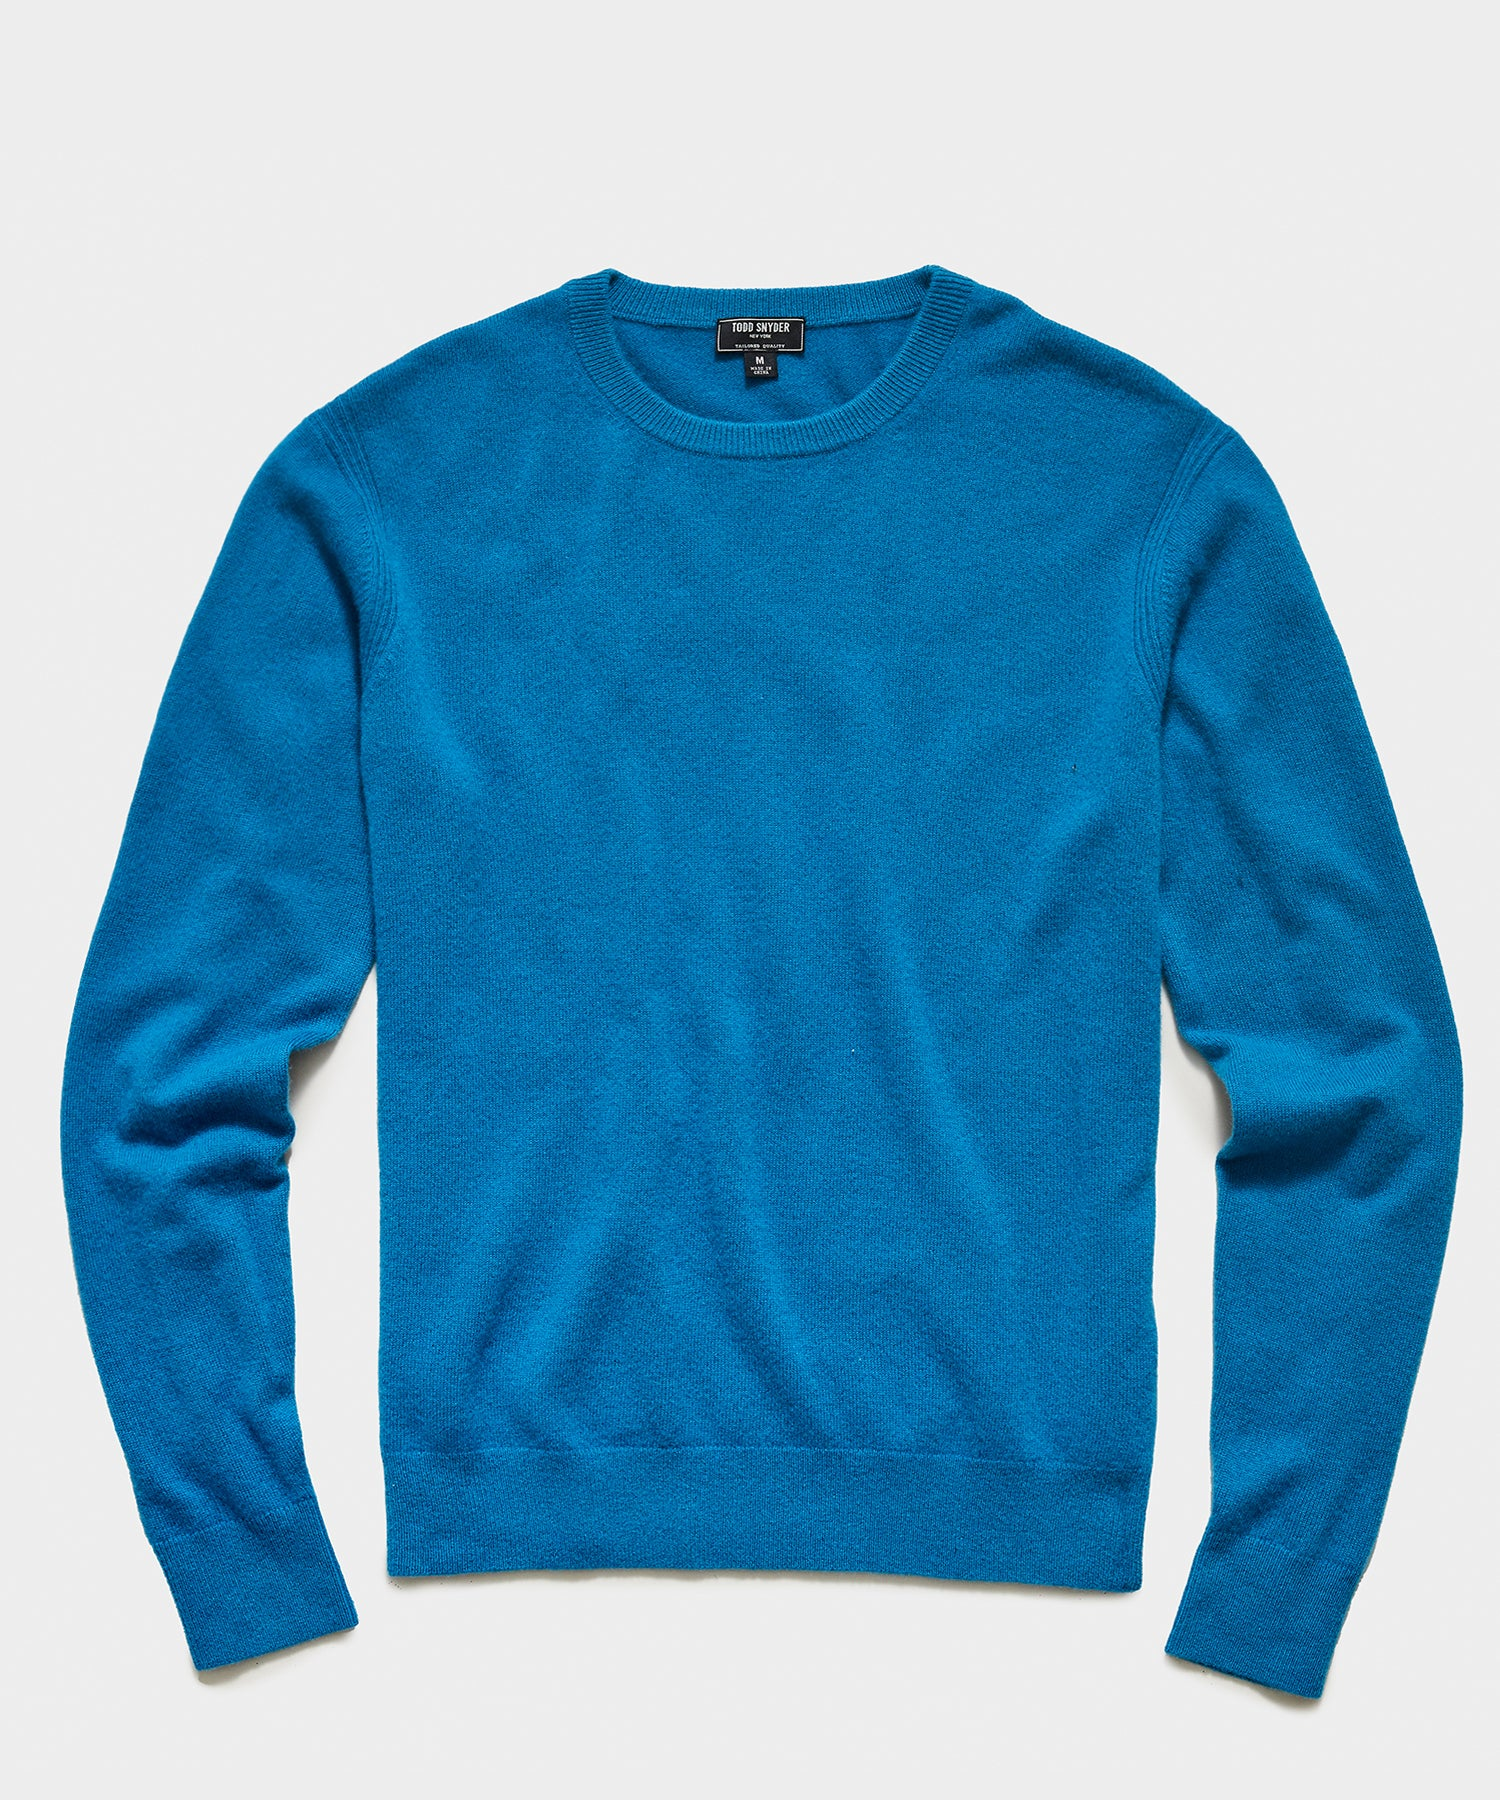 Cashmere Crewneck Sweater in Electric Blue